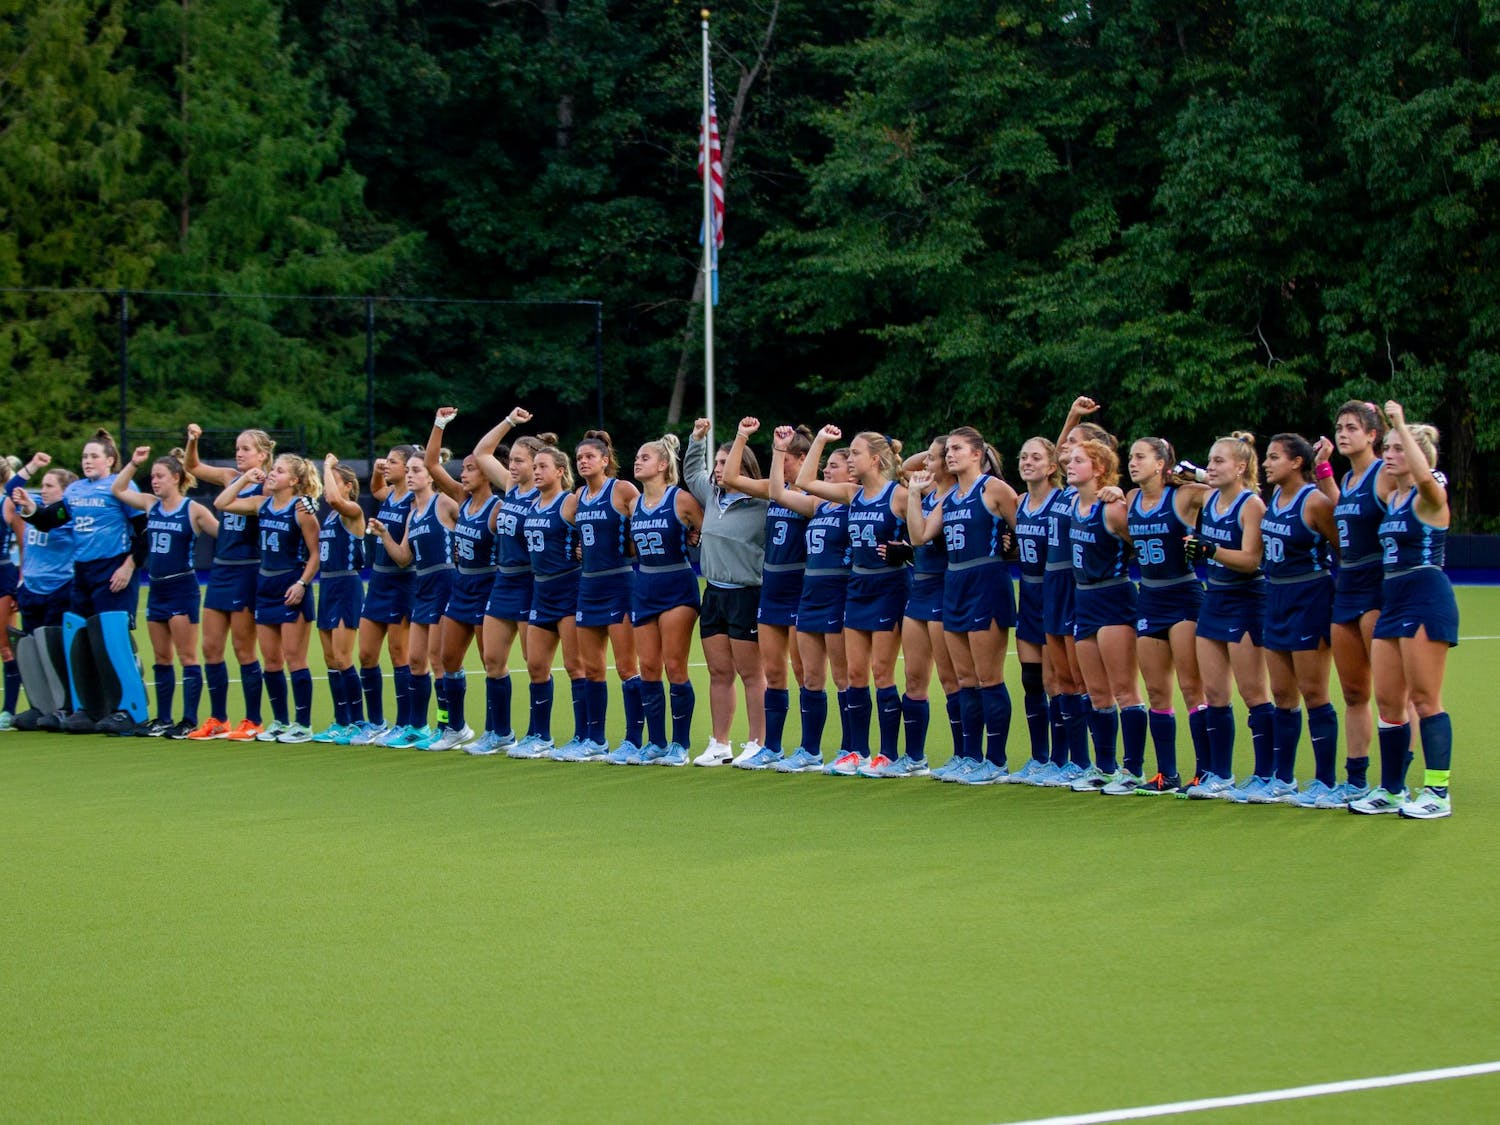 The UNC field hockey team sings their alma mater after losing 2-3 to Louisville in overtime on Oct. 22 at the Karen Shelton Stadium.